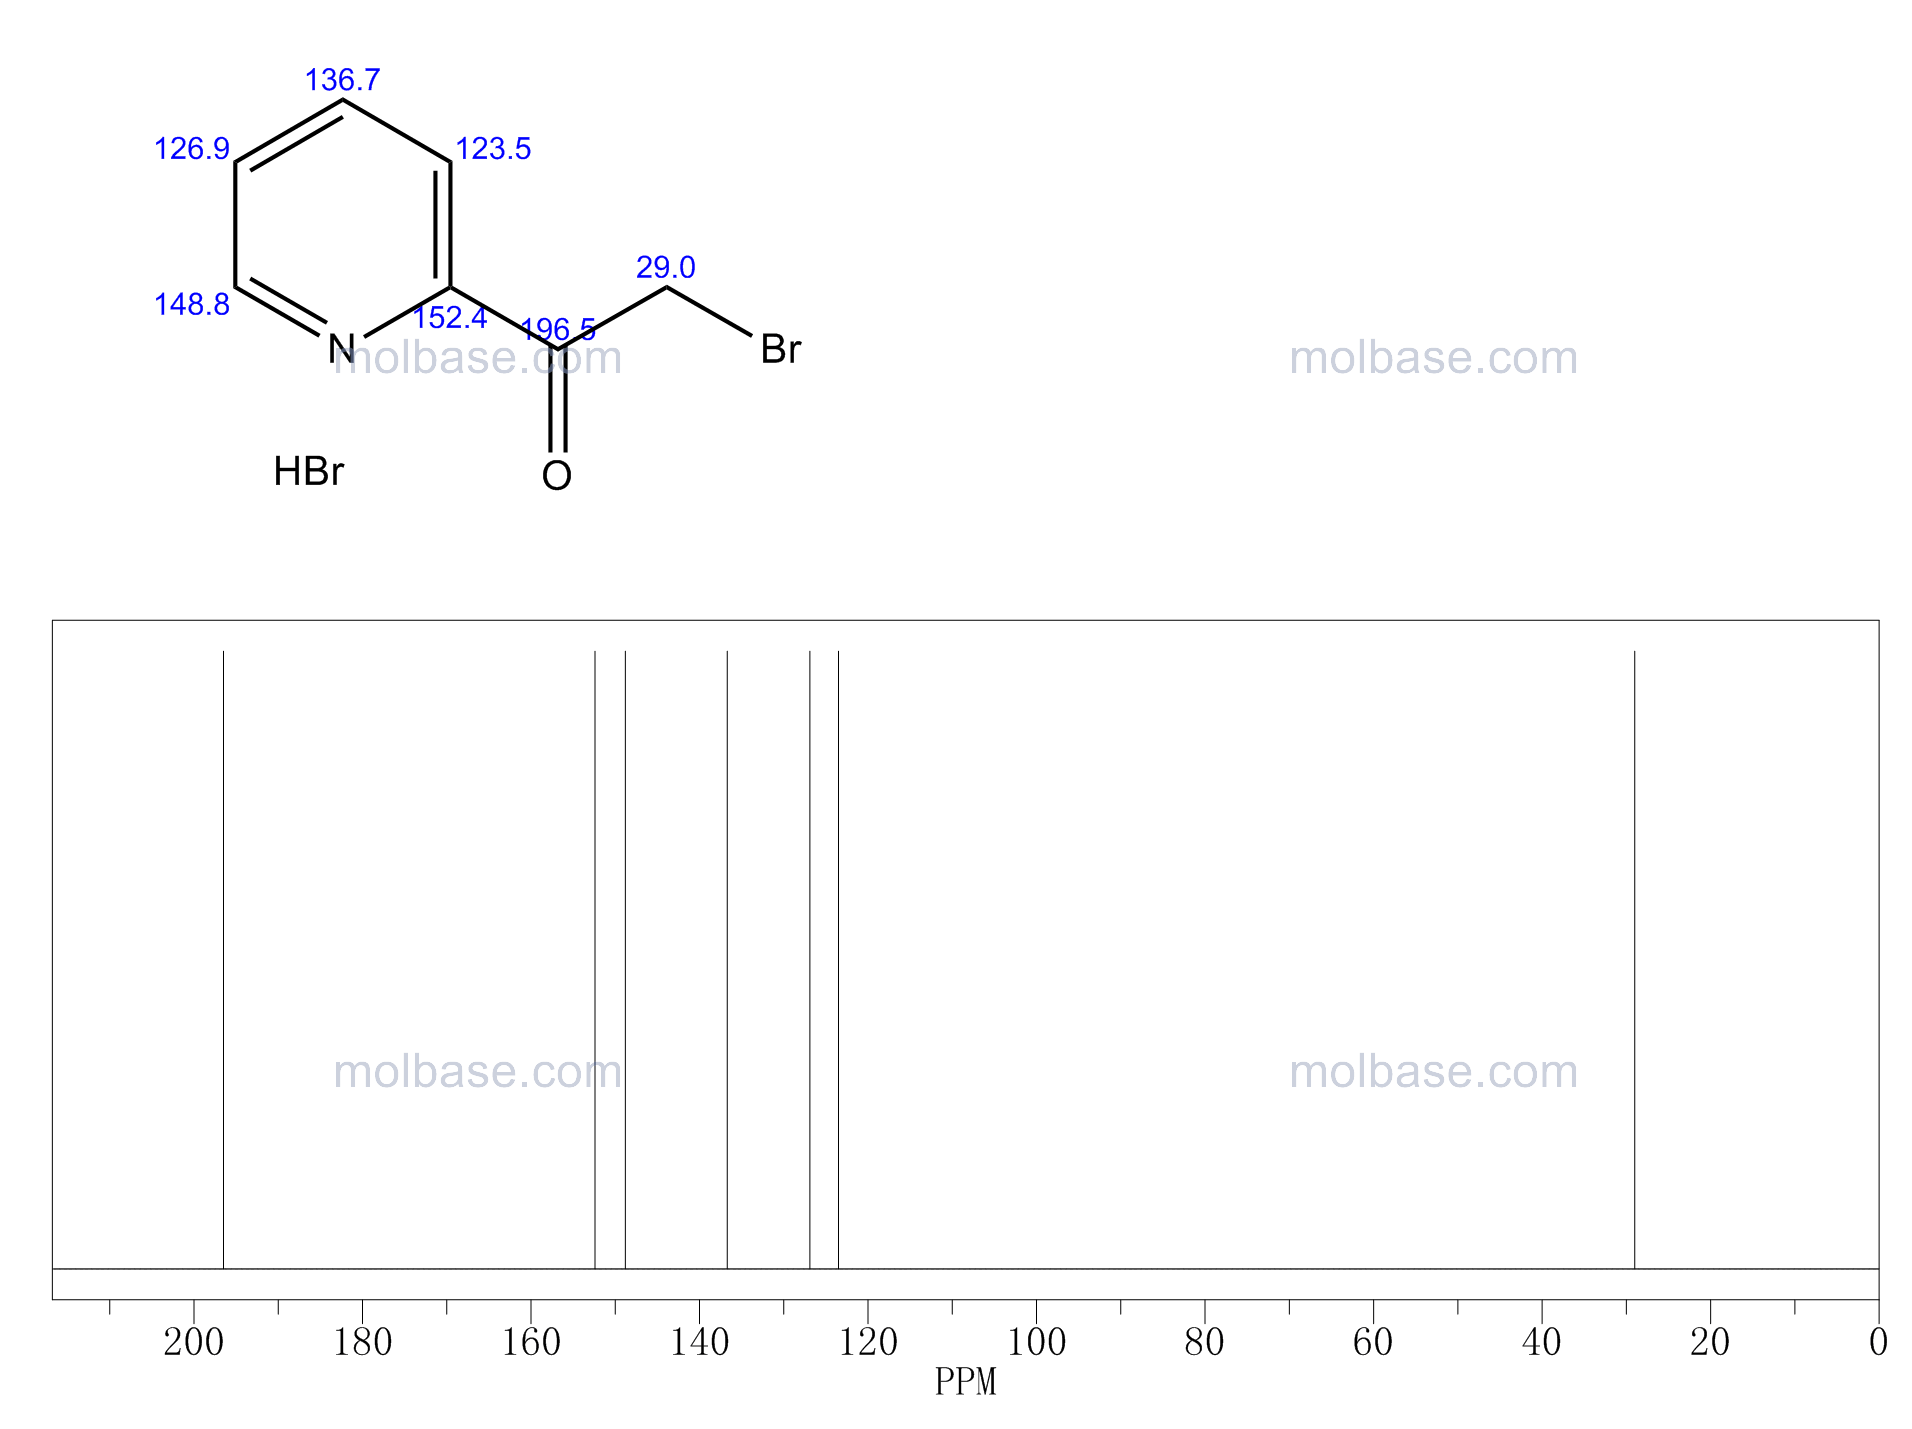 2-(Bromoacetyl)Pyridine Hydrobromide NMR spectra analysis, Chemical CAS NO. 17570-98-8 NMR spectral analysis, 2-(Bromoacetyl)Pyridine Hydrobromide C-NMR spectrum